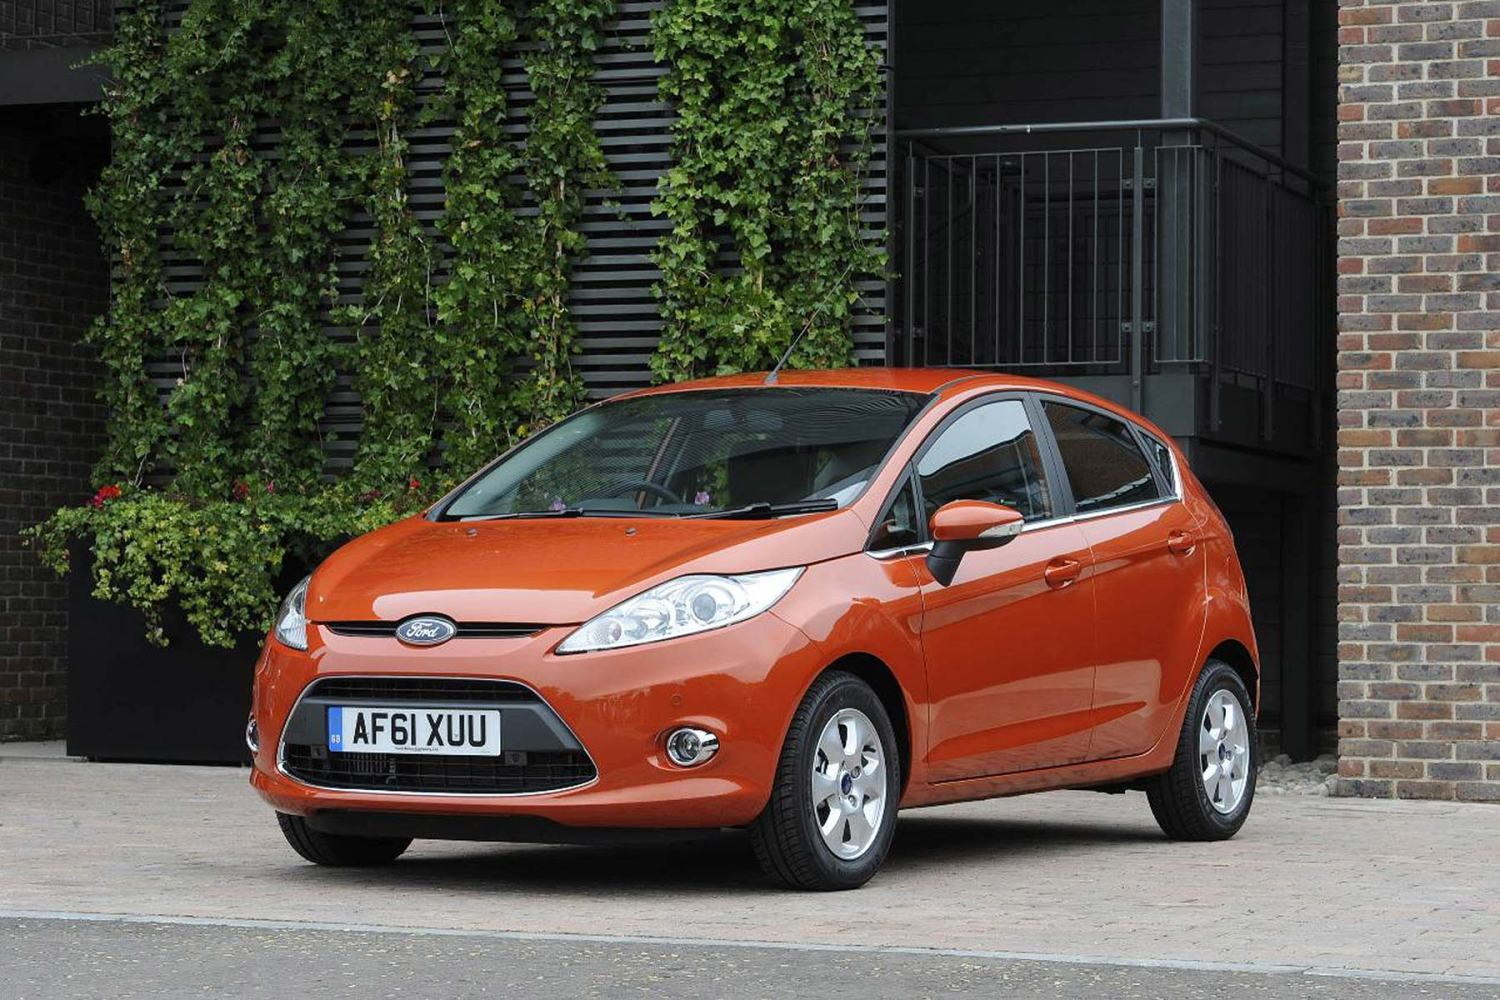 2011 used Ford Fiesta